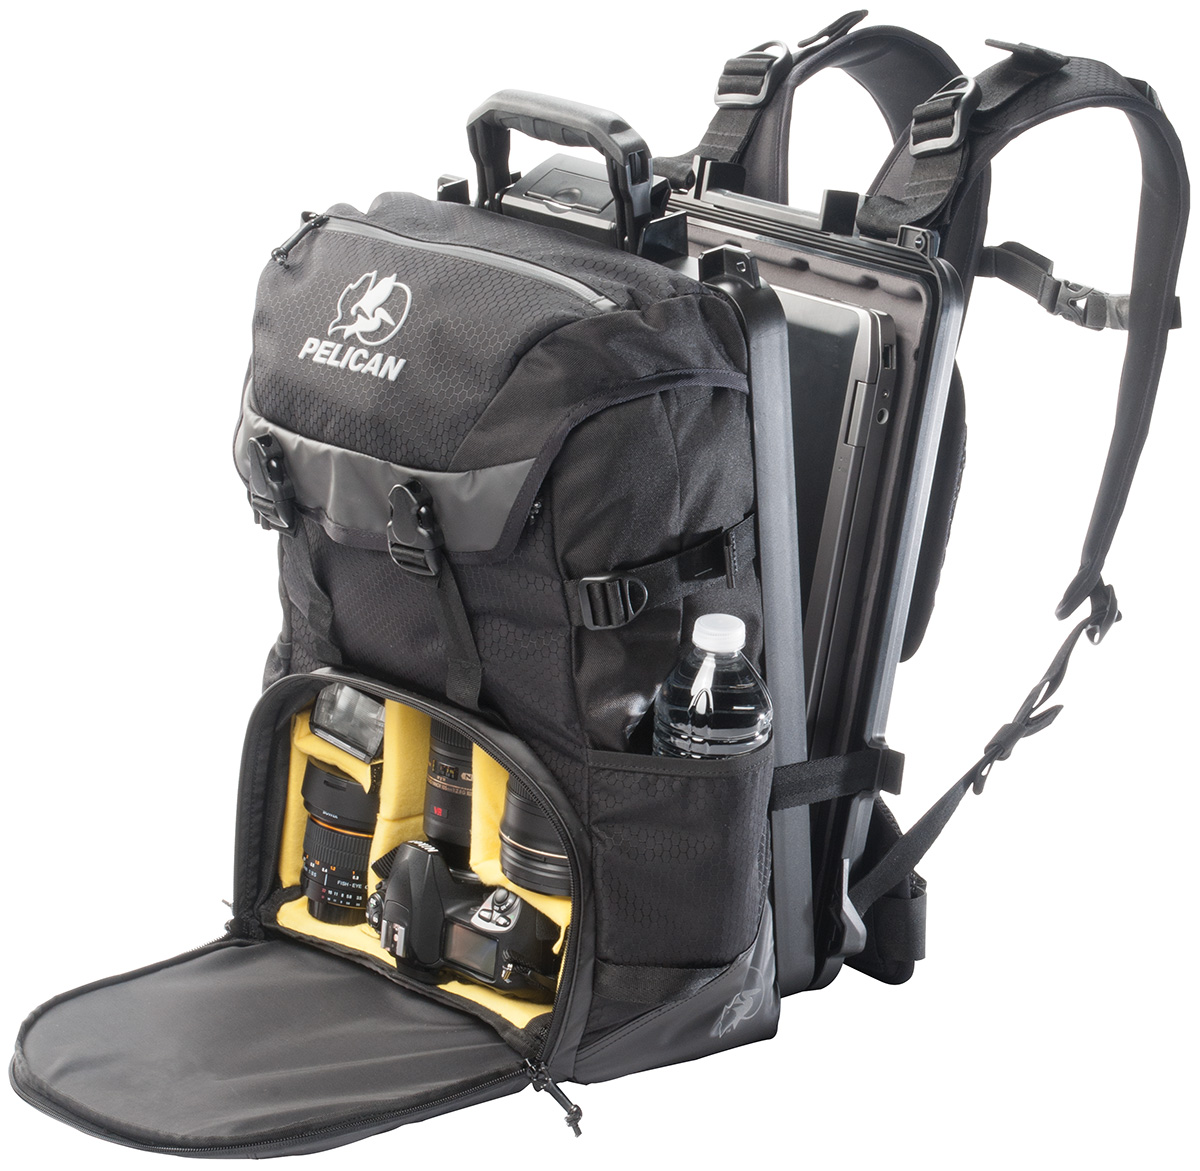 pelican peli products S130 photographer camera travel pack